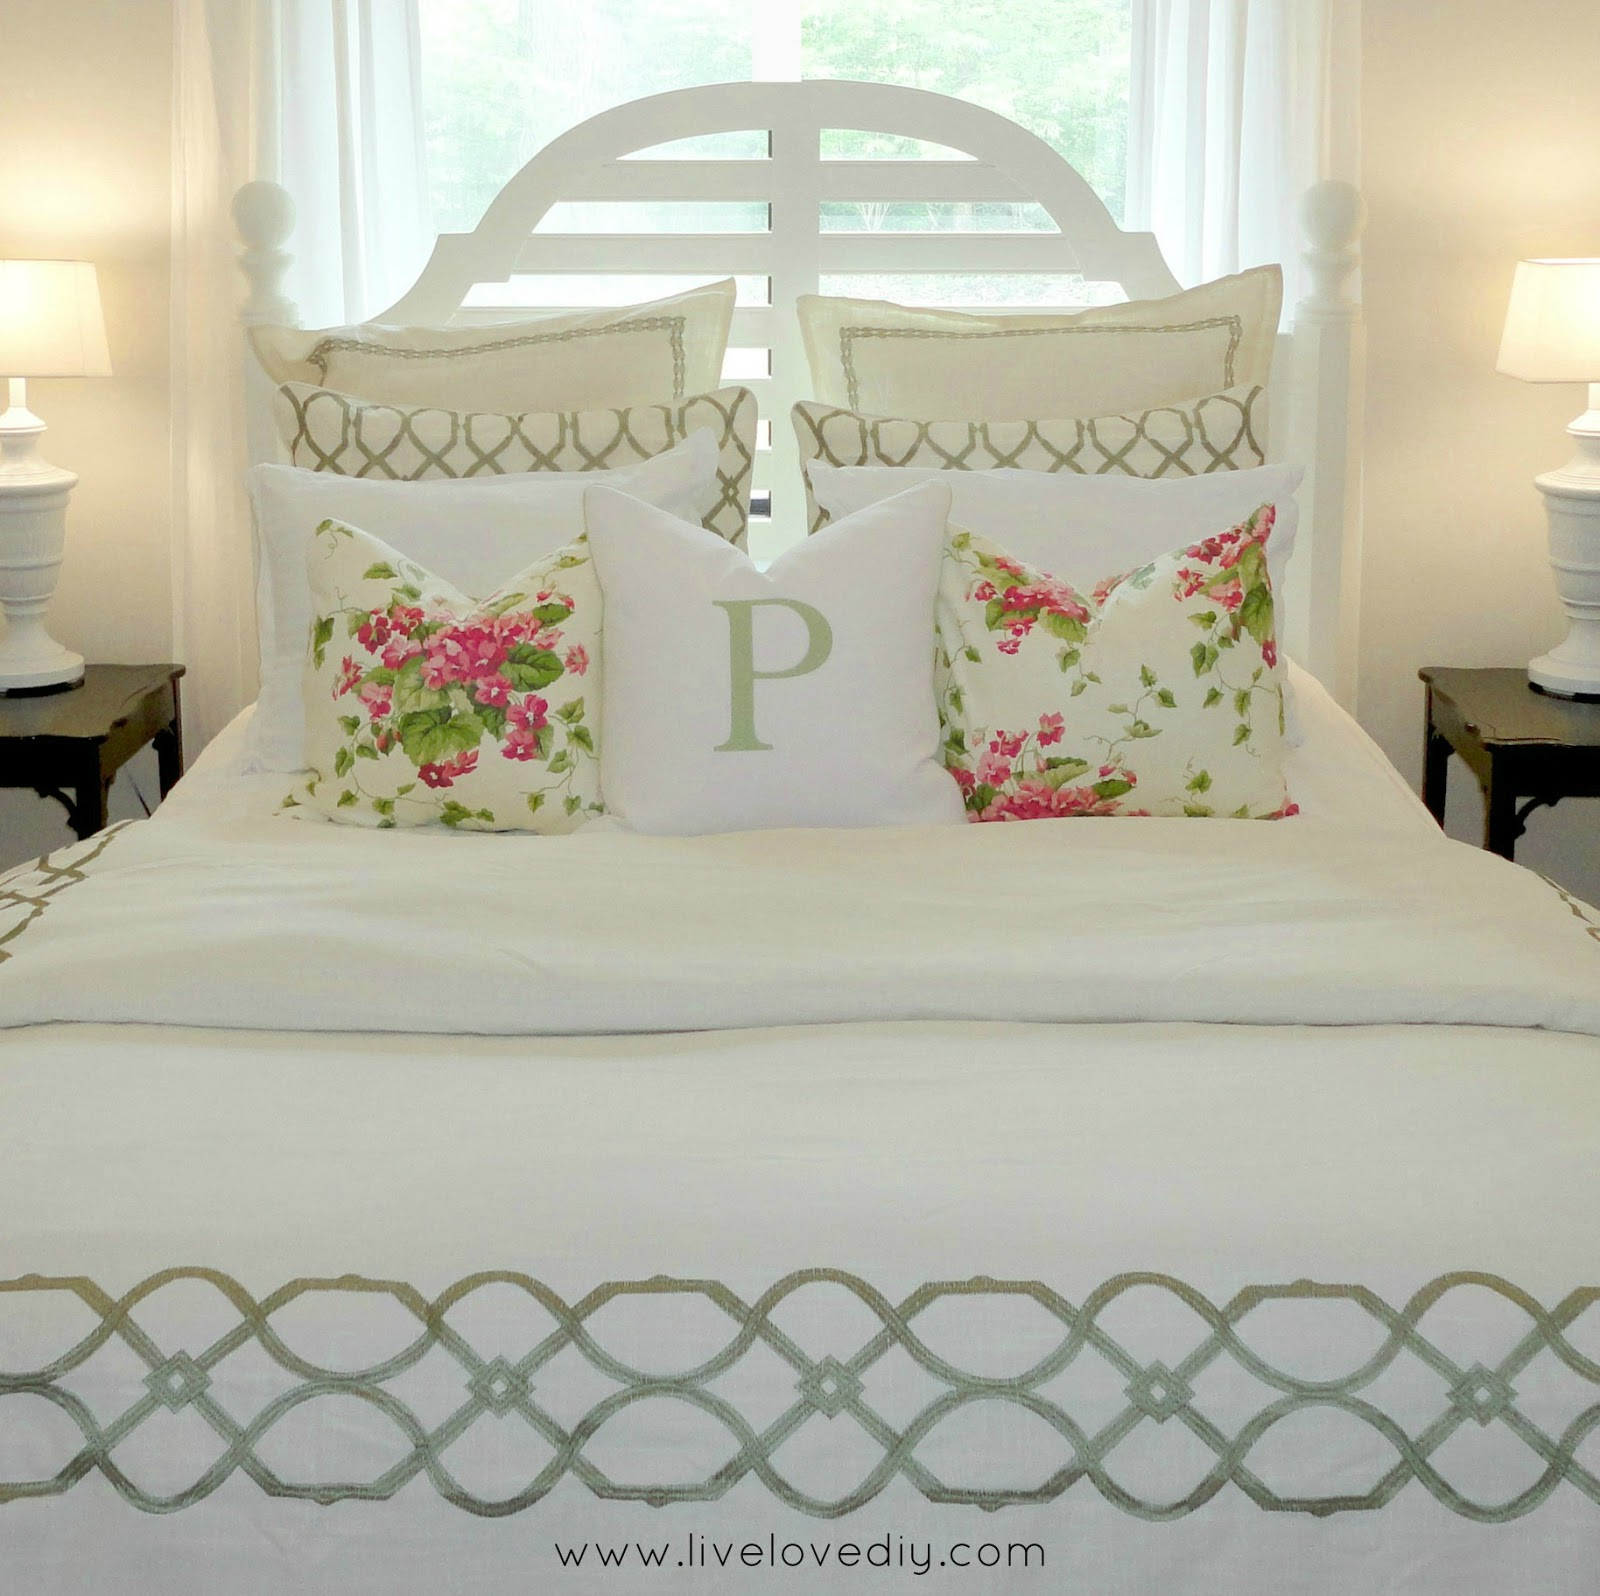 For Decorating A Bedroom Livelovediy Decorating Bedrooms With Secondhand Finds The Guest